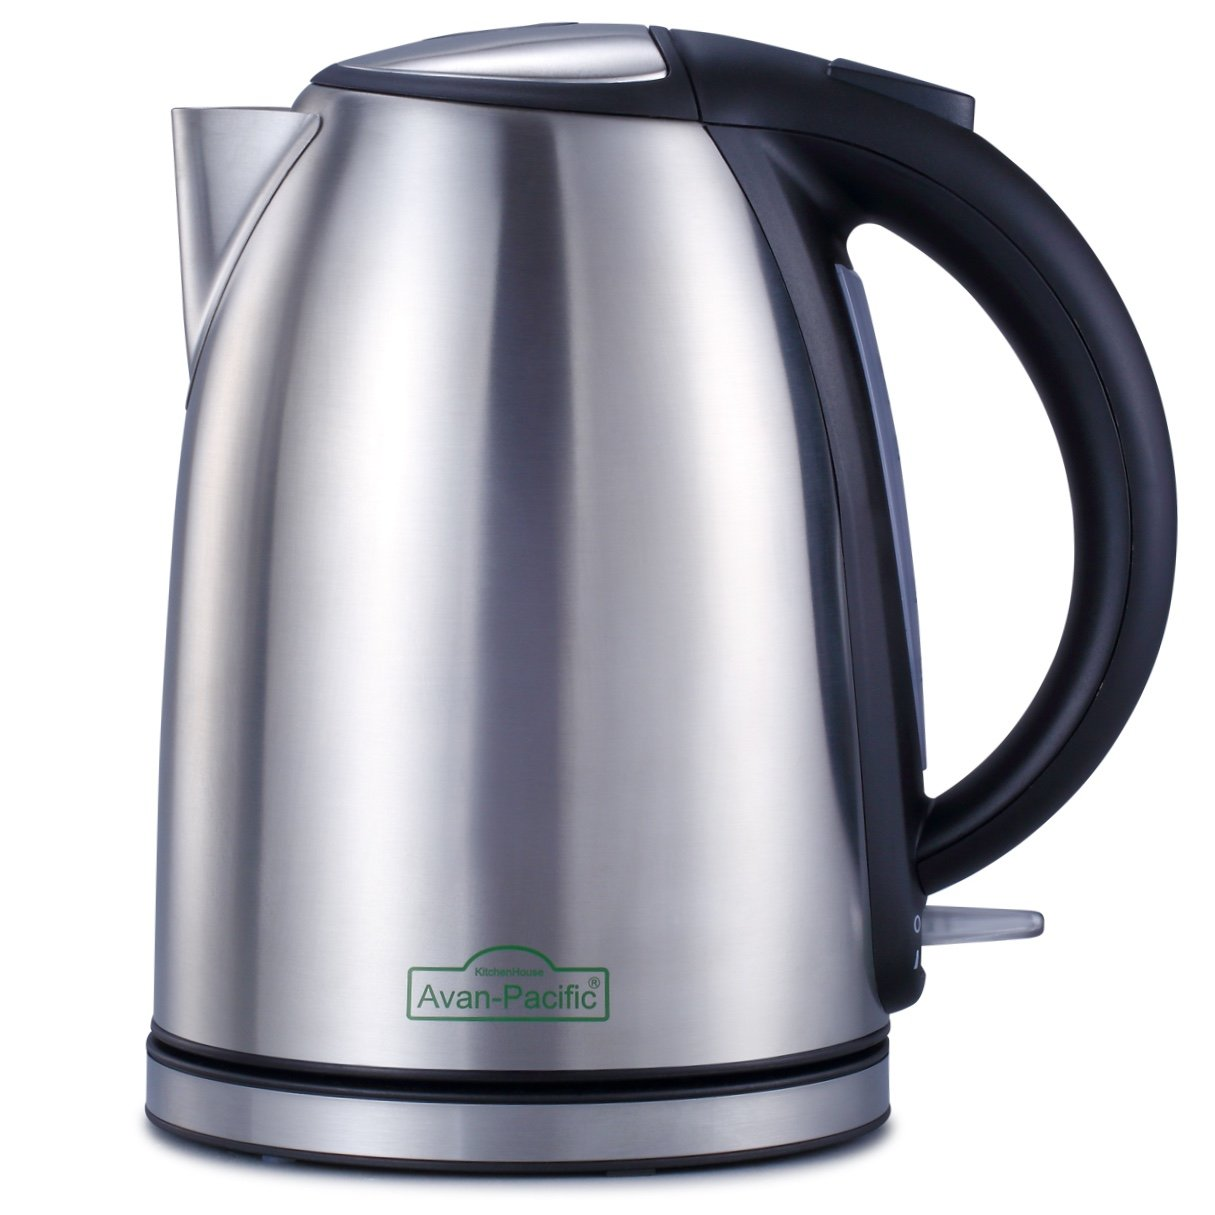 Avan-Pacific Stainless Steel 360°Cordless Electric Kettle 1.8L 1500W Auto Shut-Off, Boil Dry Protection ETL/FDA Approval